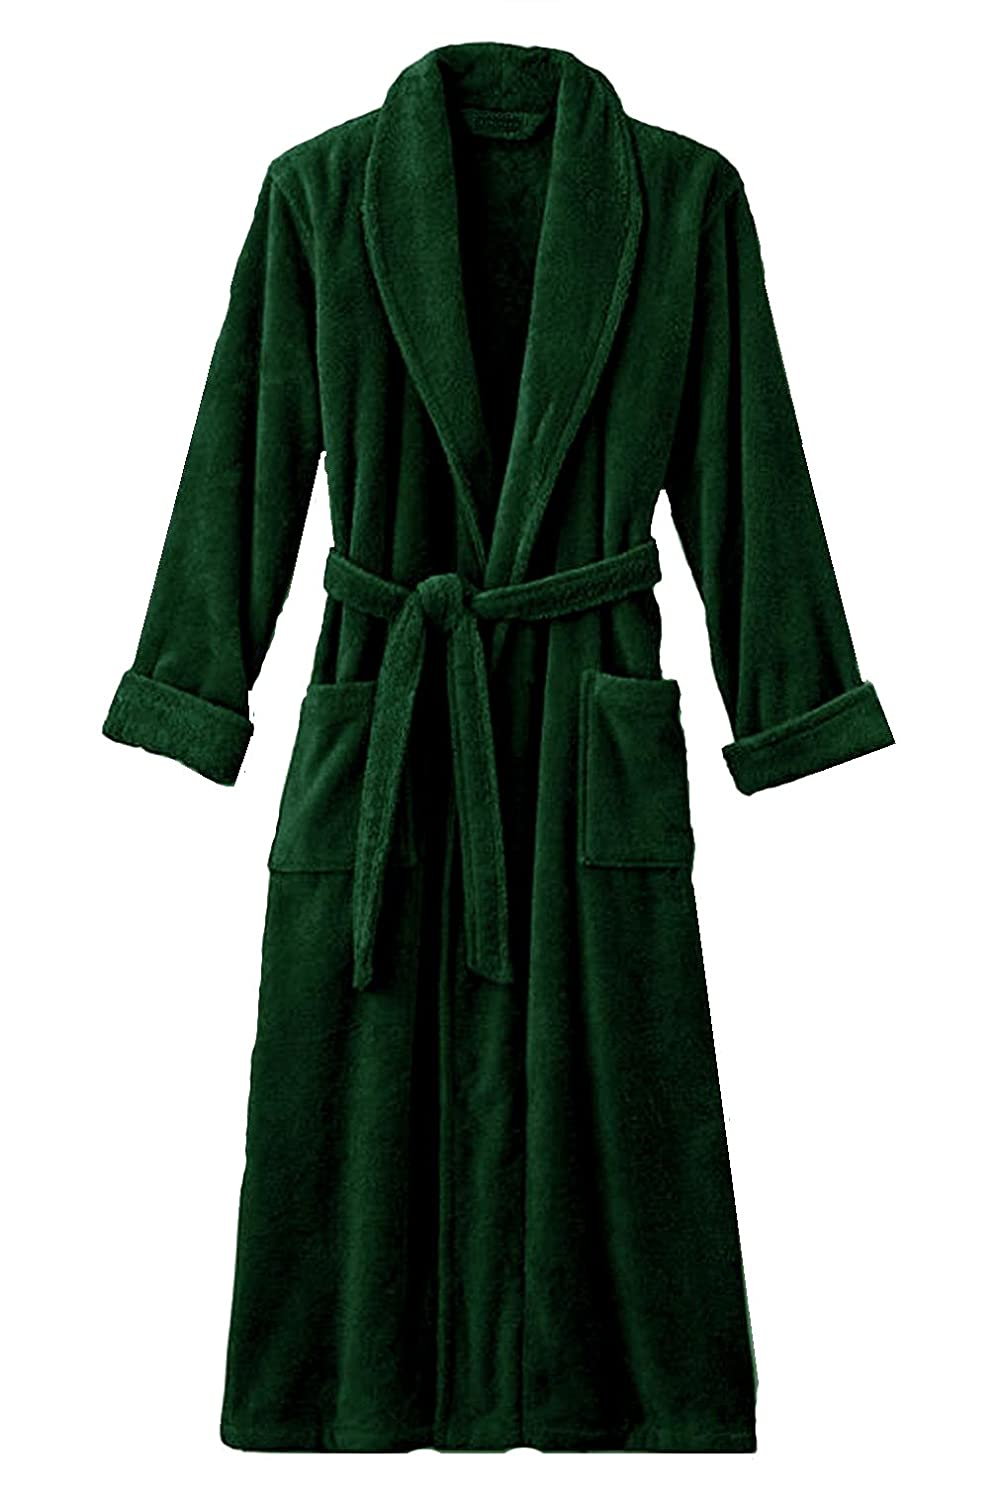 Terry Bathrobe 100% Cotton - 12 Colors Available. (Navy Blue)